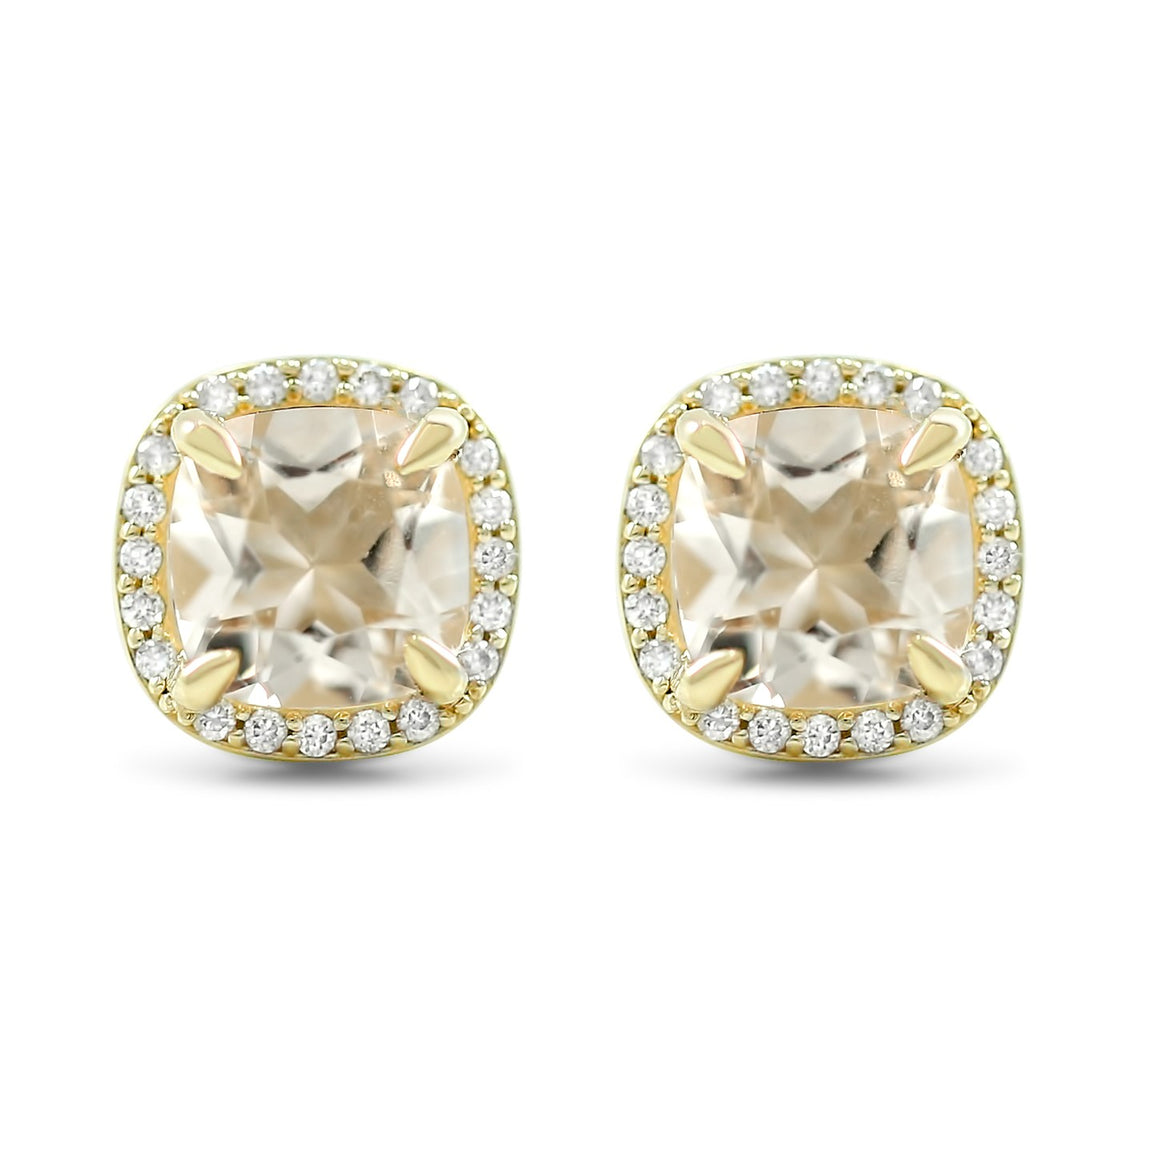 1.59tcw cushion cut peach beryl gemstone stud earrings with matching white diamond halo 14k yellow gold